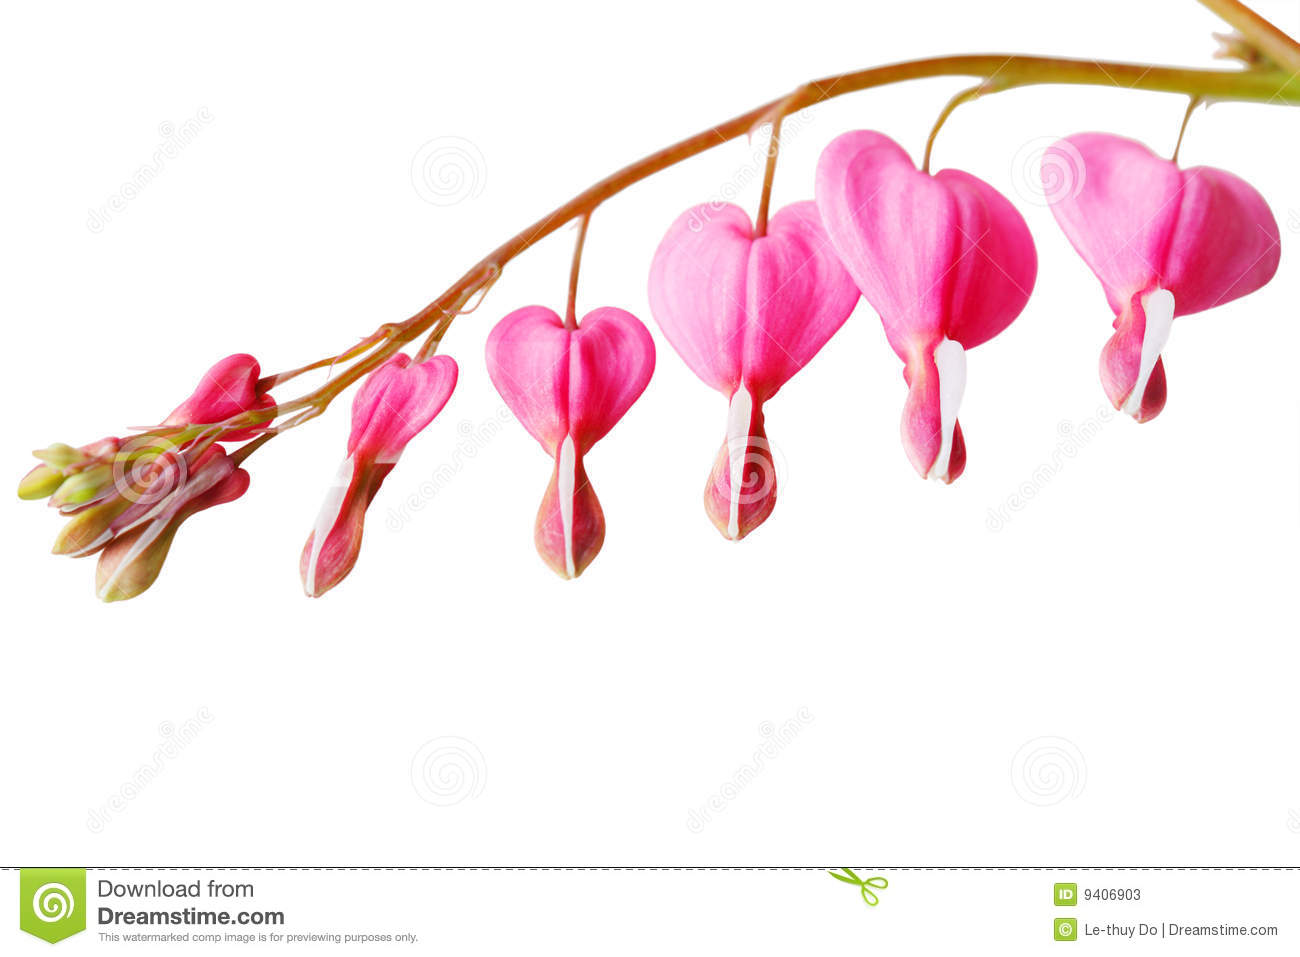 bleeding heart flower stock photos image 9406903